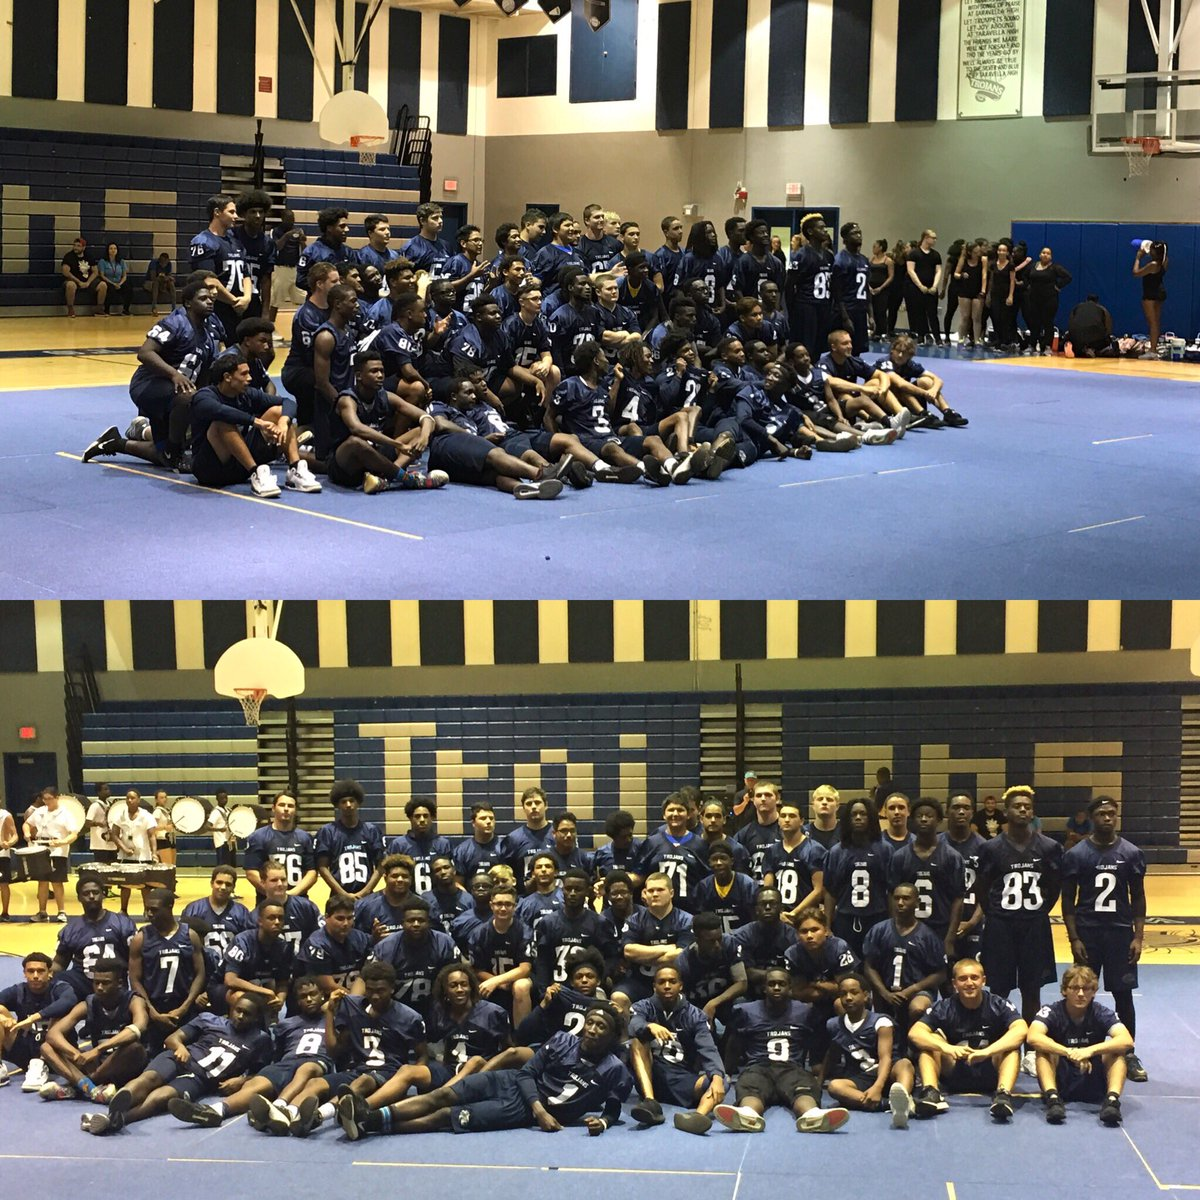 Meet the Trojans Night was a success. Thanks to the JPT Percussion section and color guard! #TrojanNation #EARN #1JPT <br>http://pic.twitter.com/Q5ObSDLyLy